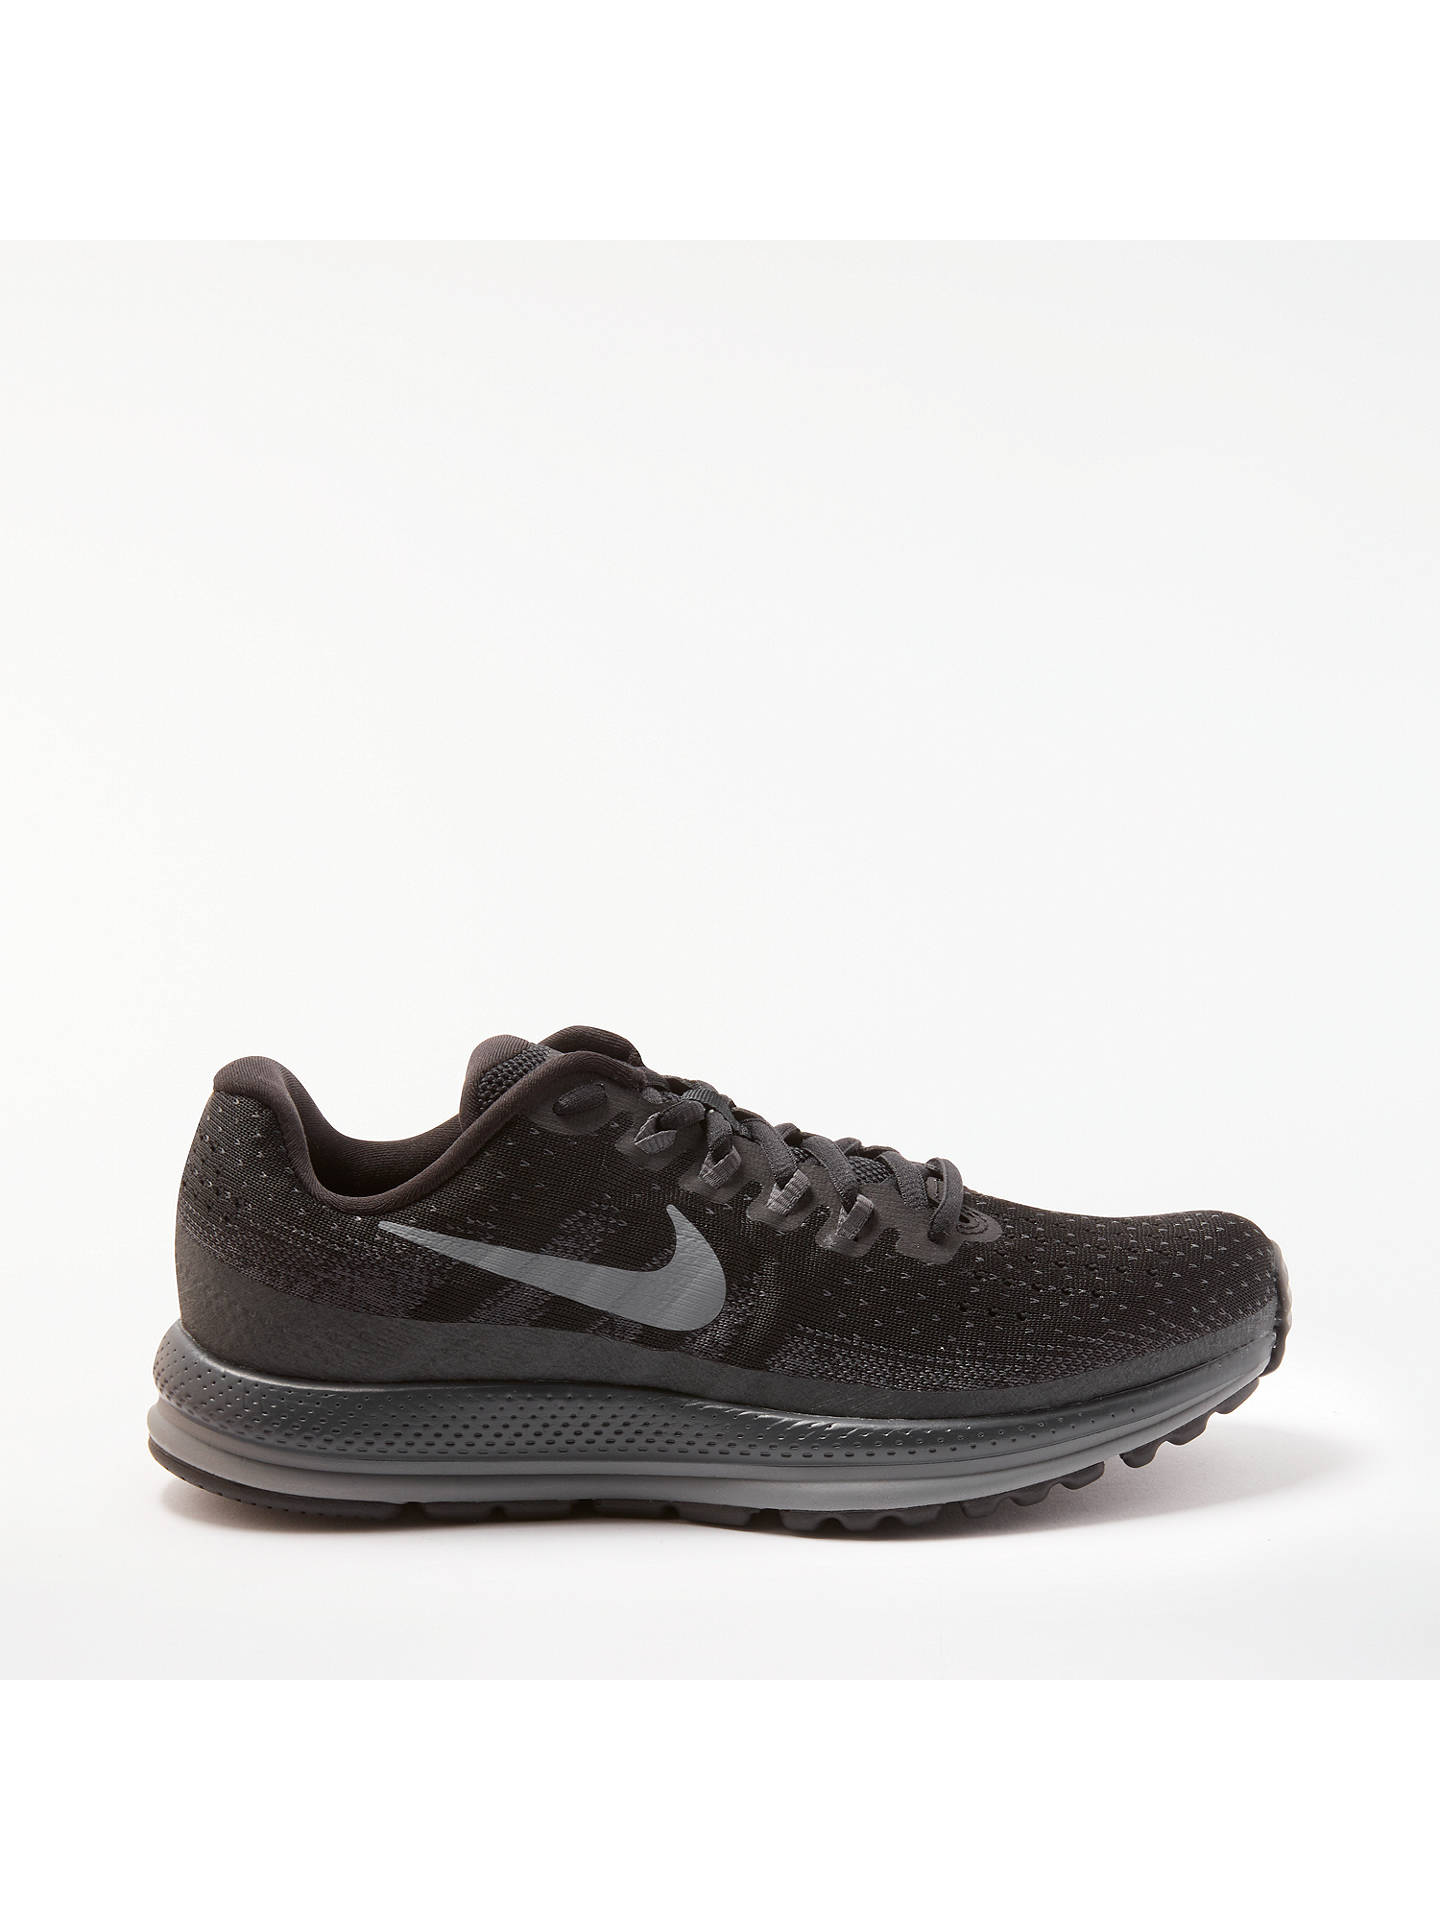 9966824d2425 Buy Nike Air Zoom Vomero 13 Women s Running Shoes